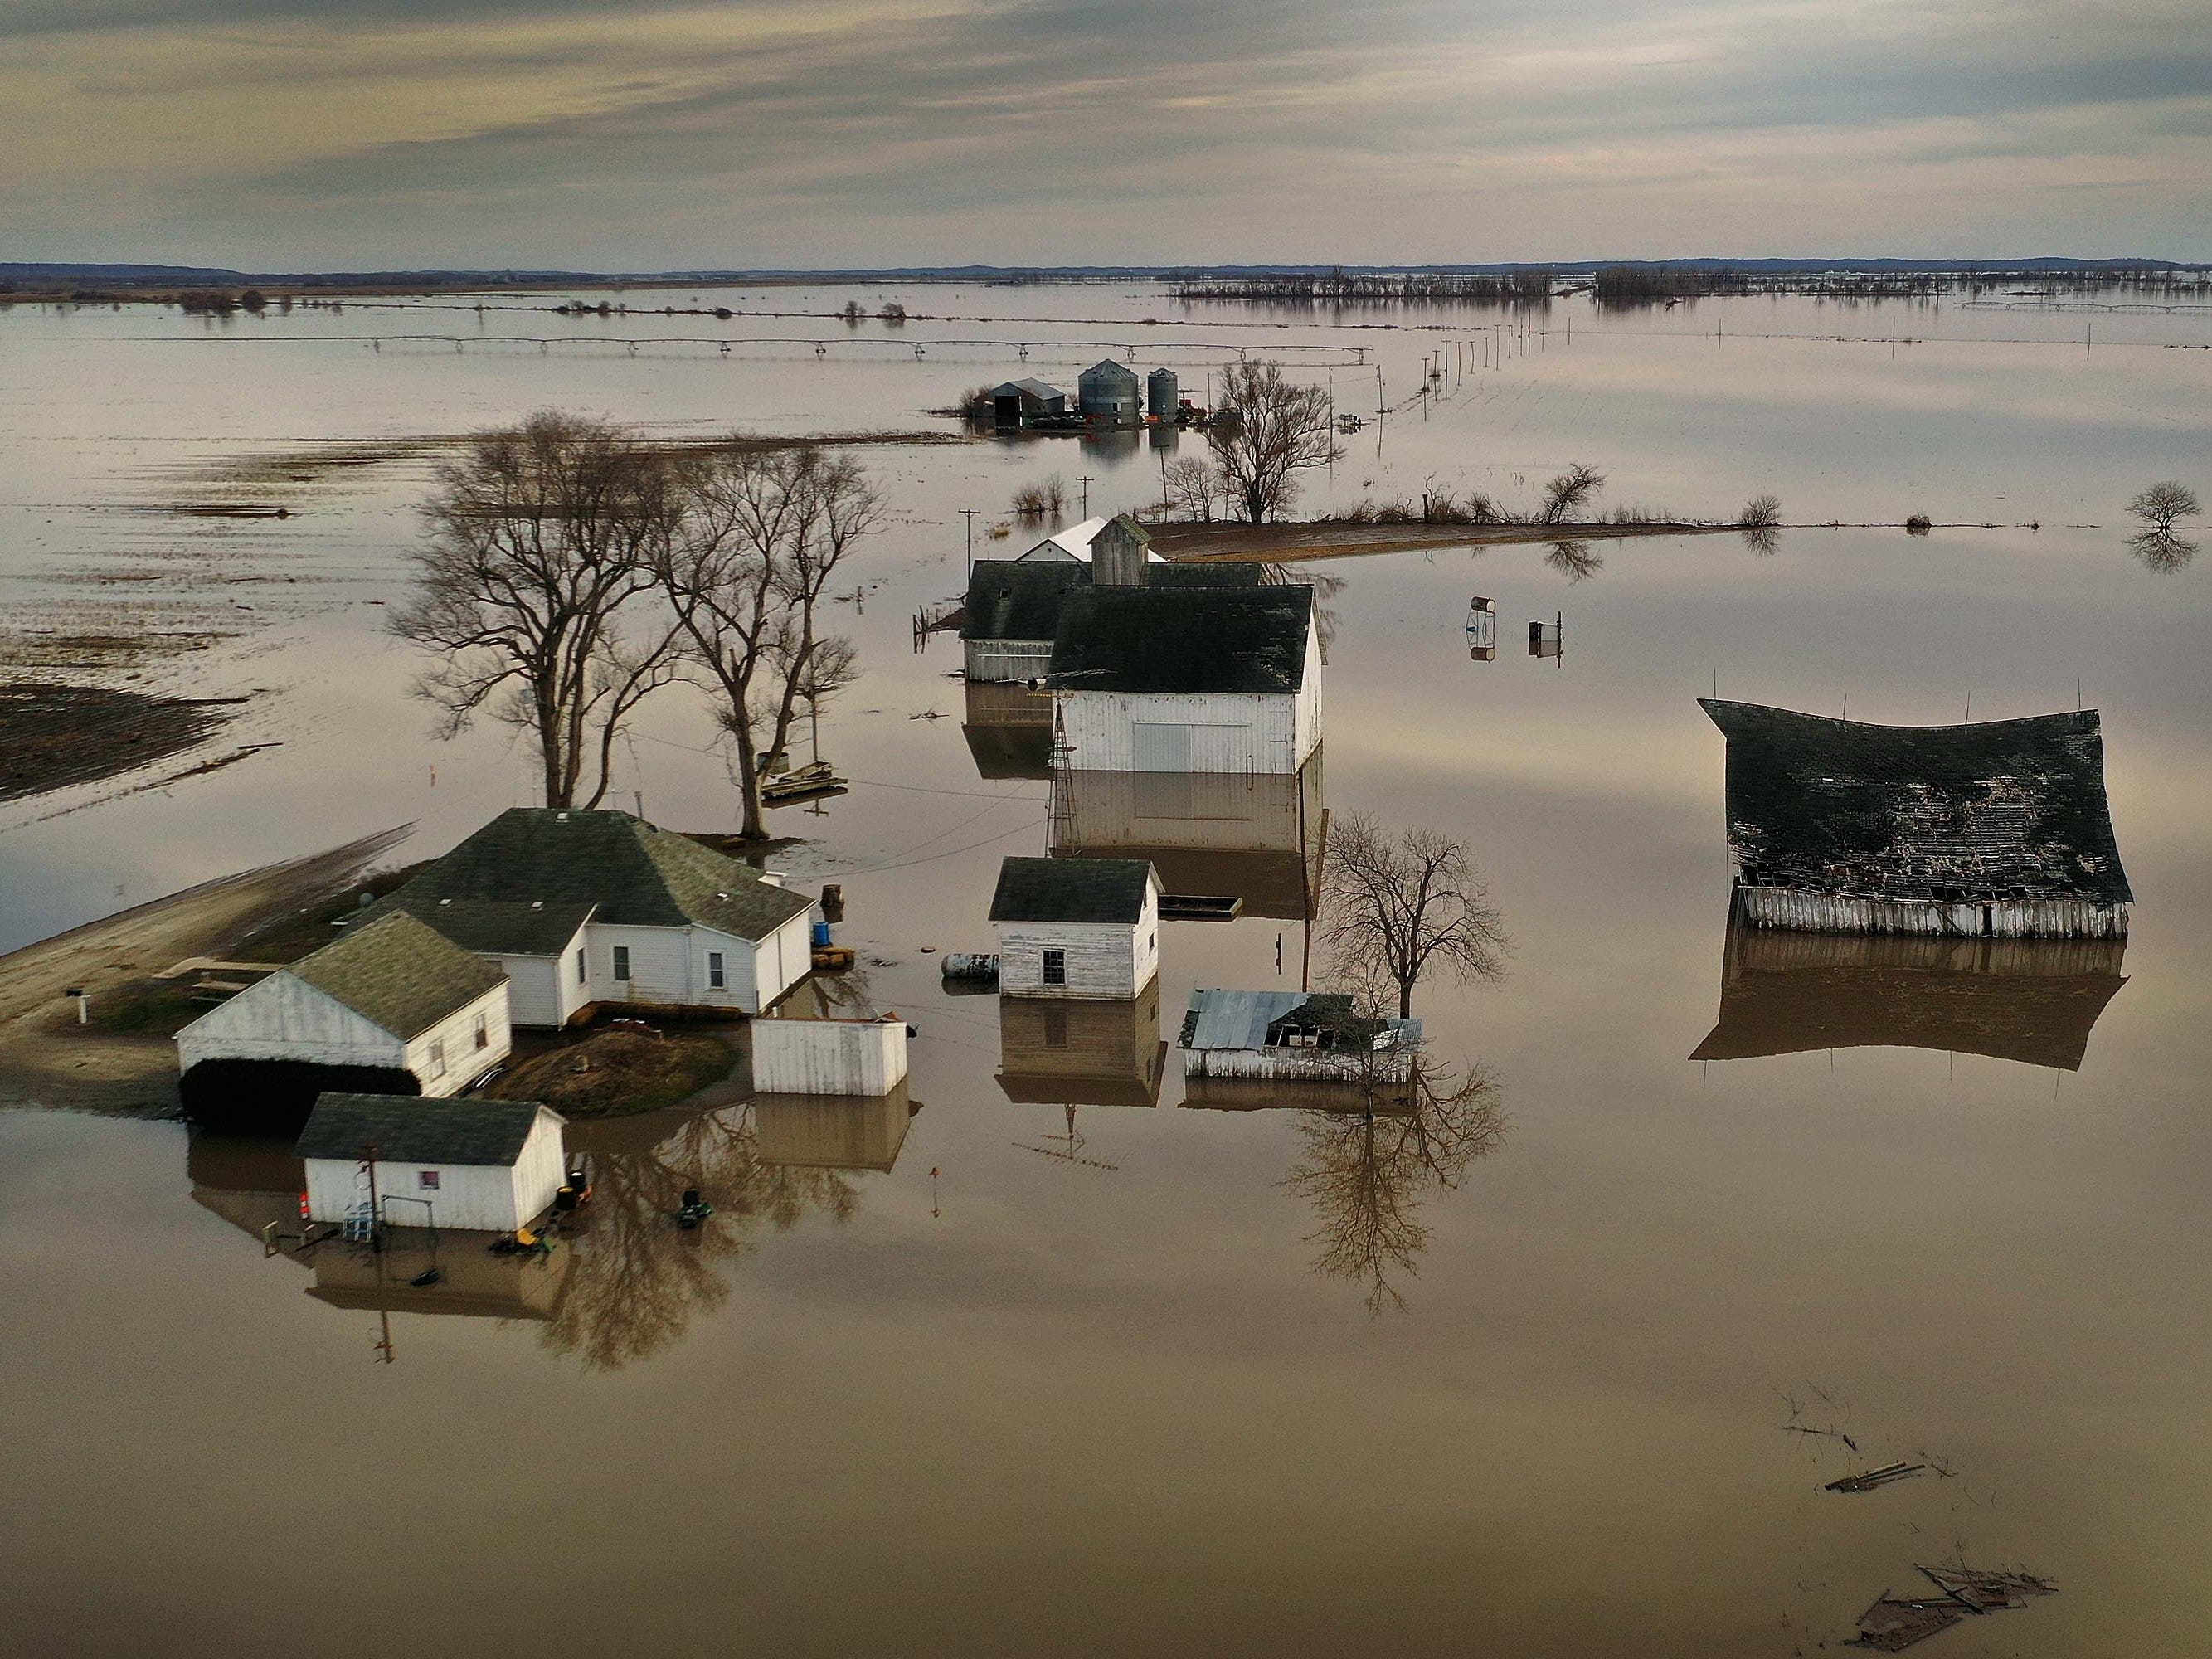 """Floodwater surrounds a farm on March 22, 2019 near Craig, Mo. Midwest states are battling some of the worst floodings they have experienced in decades as rain and snowmelt from the recent """"bomb cyclone"""" has inundated rivers and streams. At least three deaths have been linked to the flooding."""